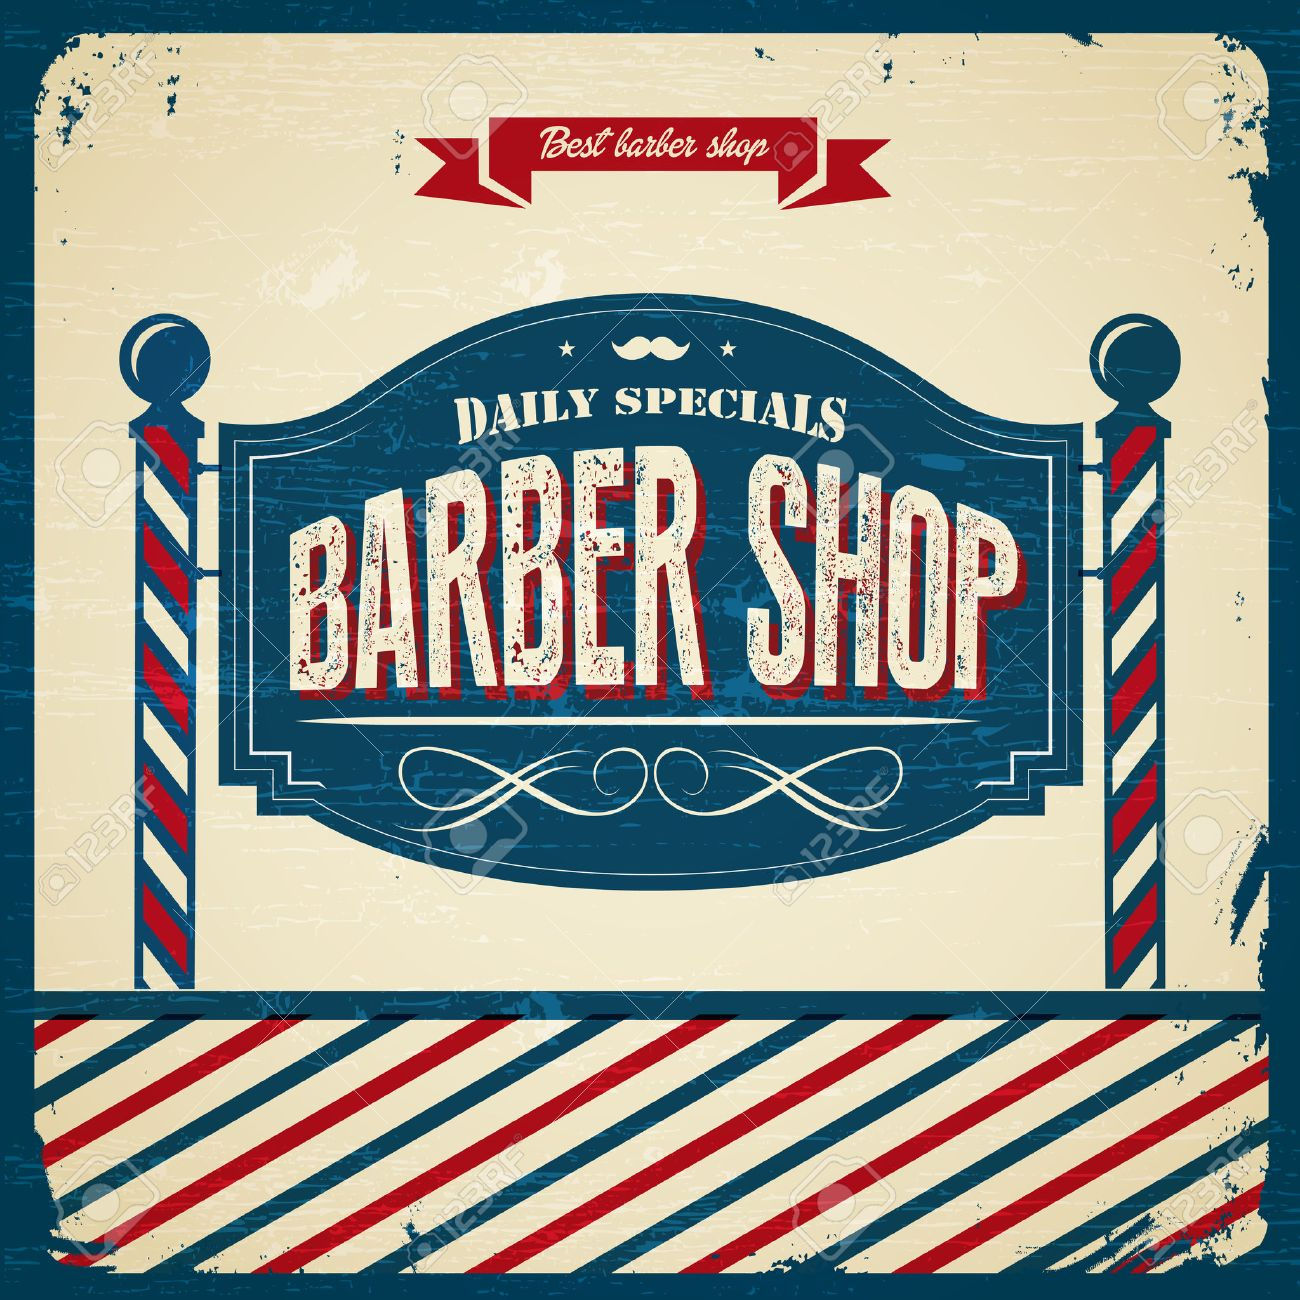 Antique barber shop sign - Retro Barber Shop Vintage Style Stock Vector 26202509